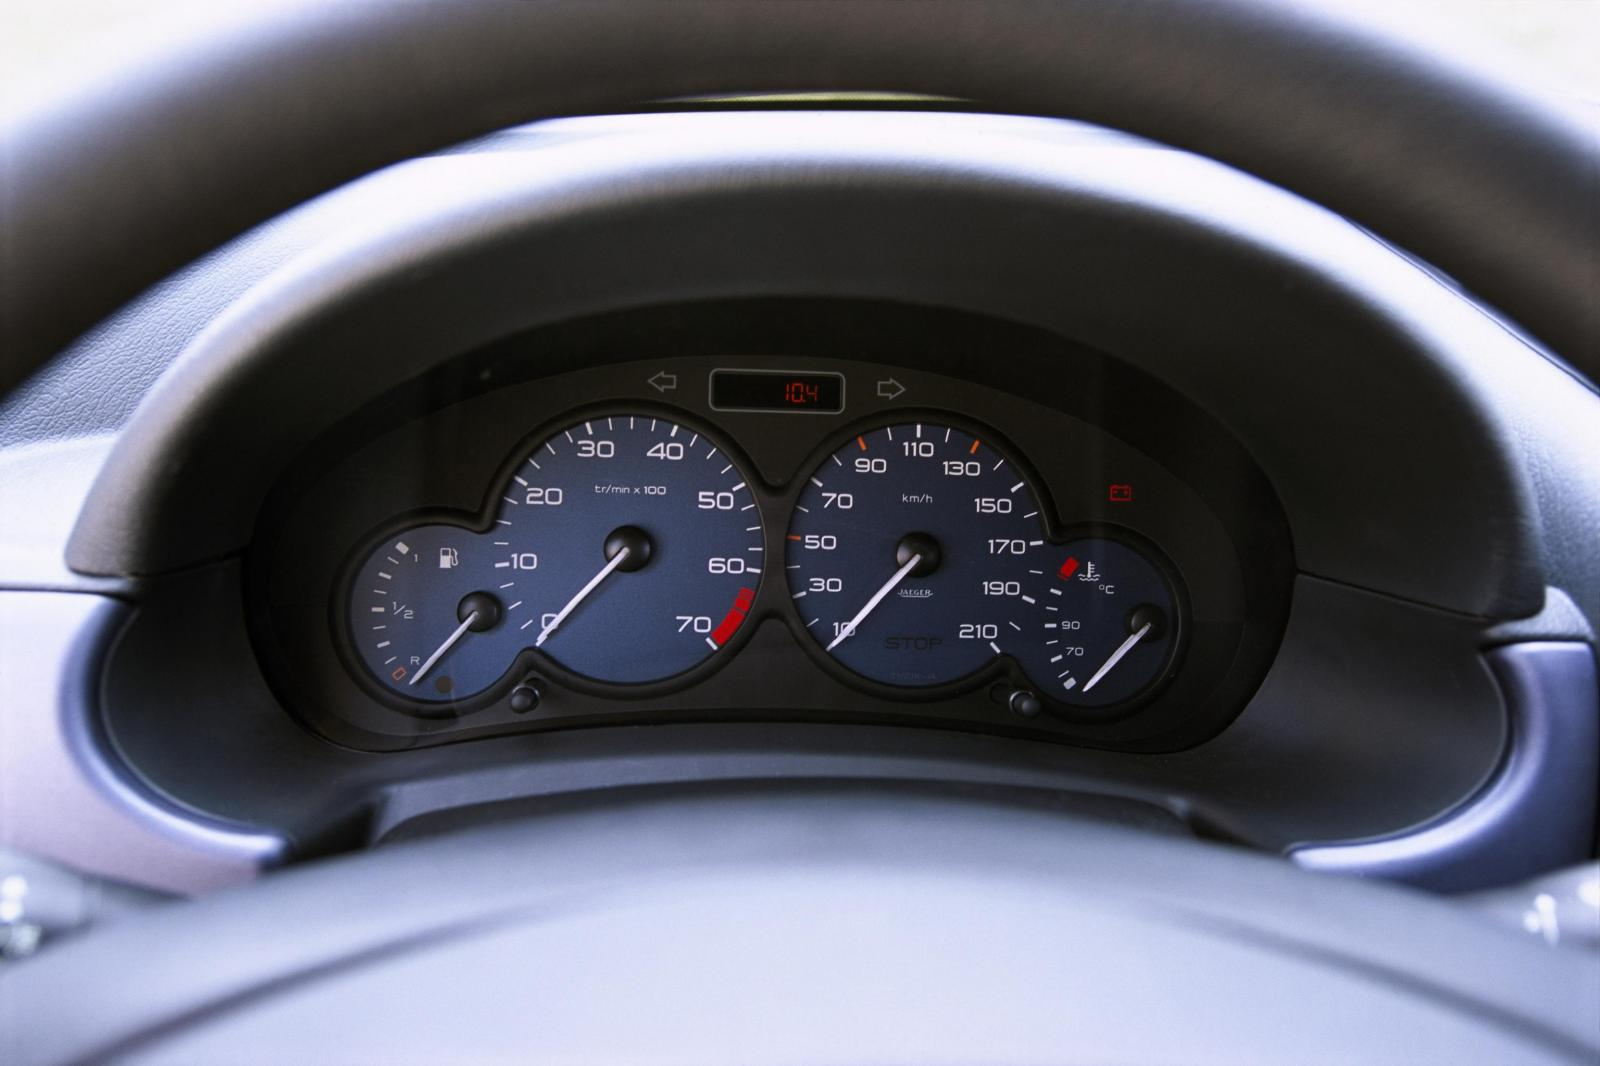 Berlingo 2002 speedometer